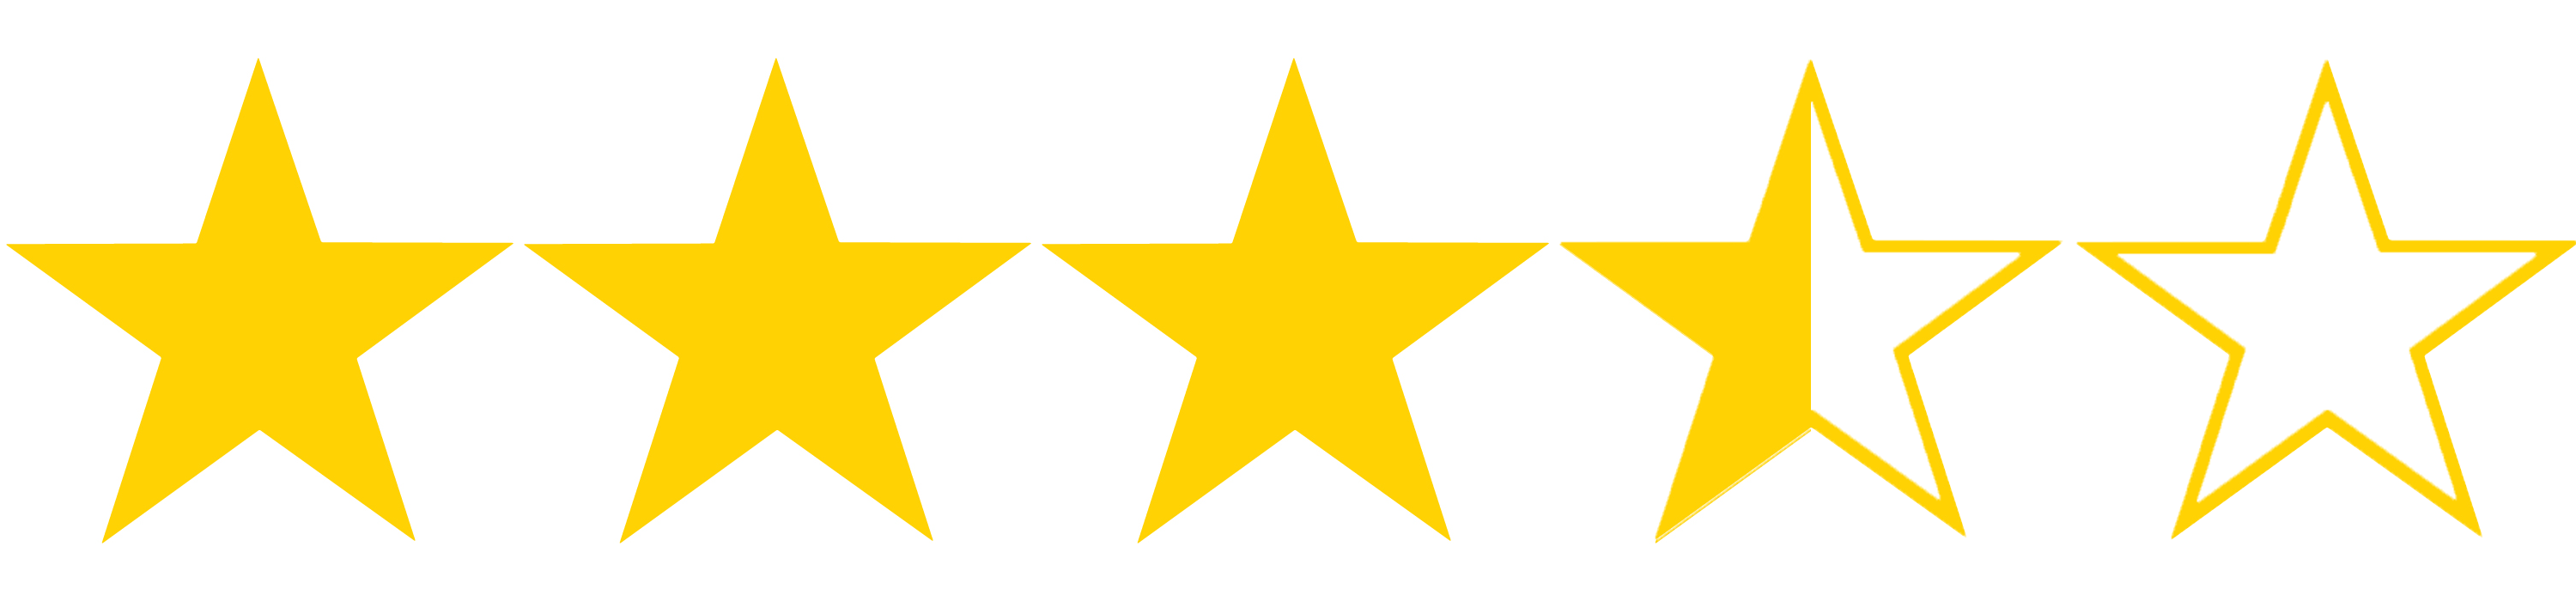 Star ratings for movies